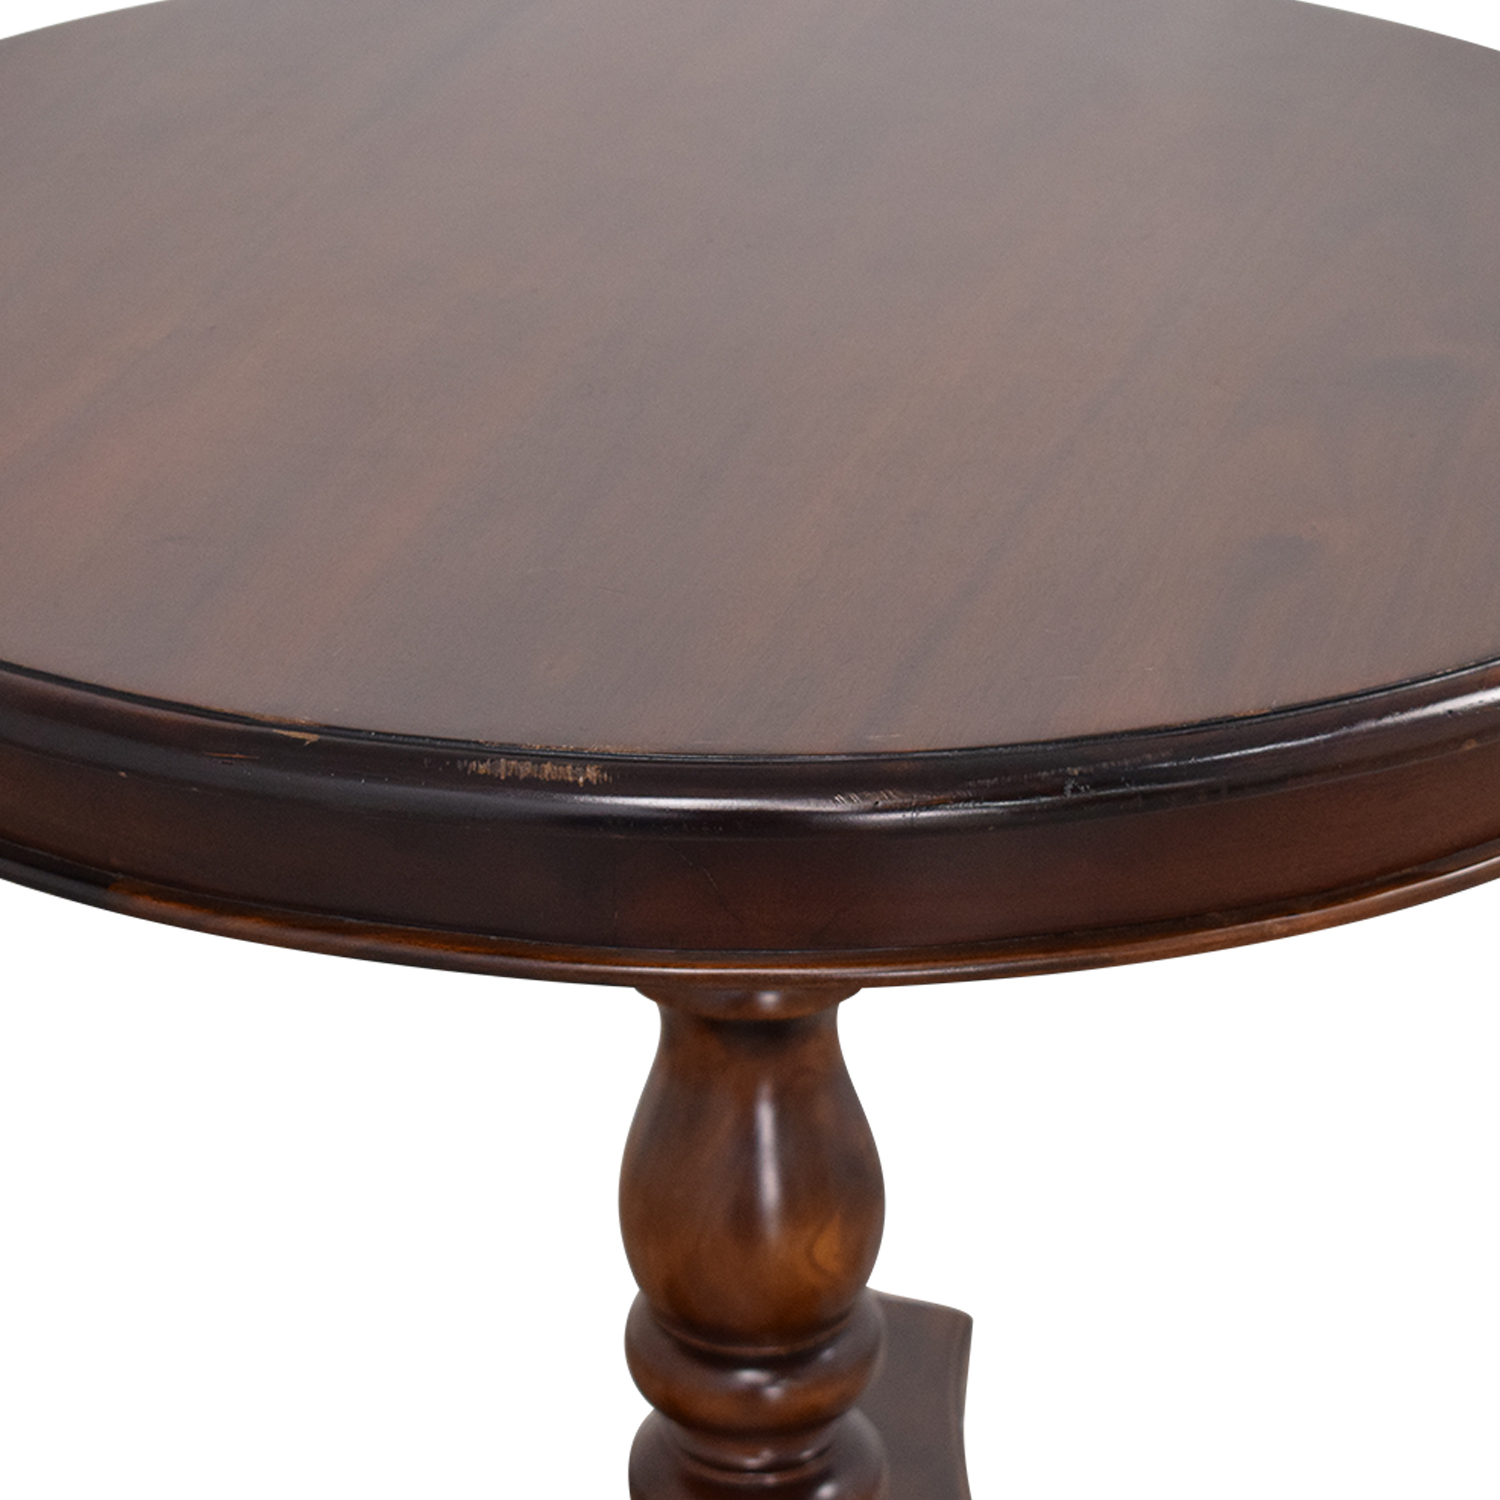 Ethan Allen Ethan Allen Round Dining Table Dinner Tables